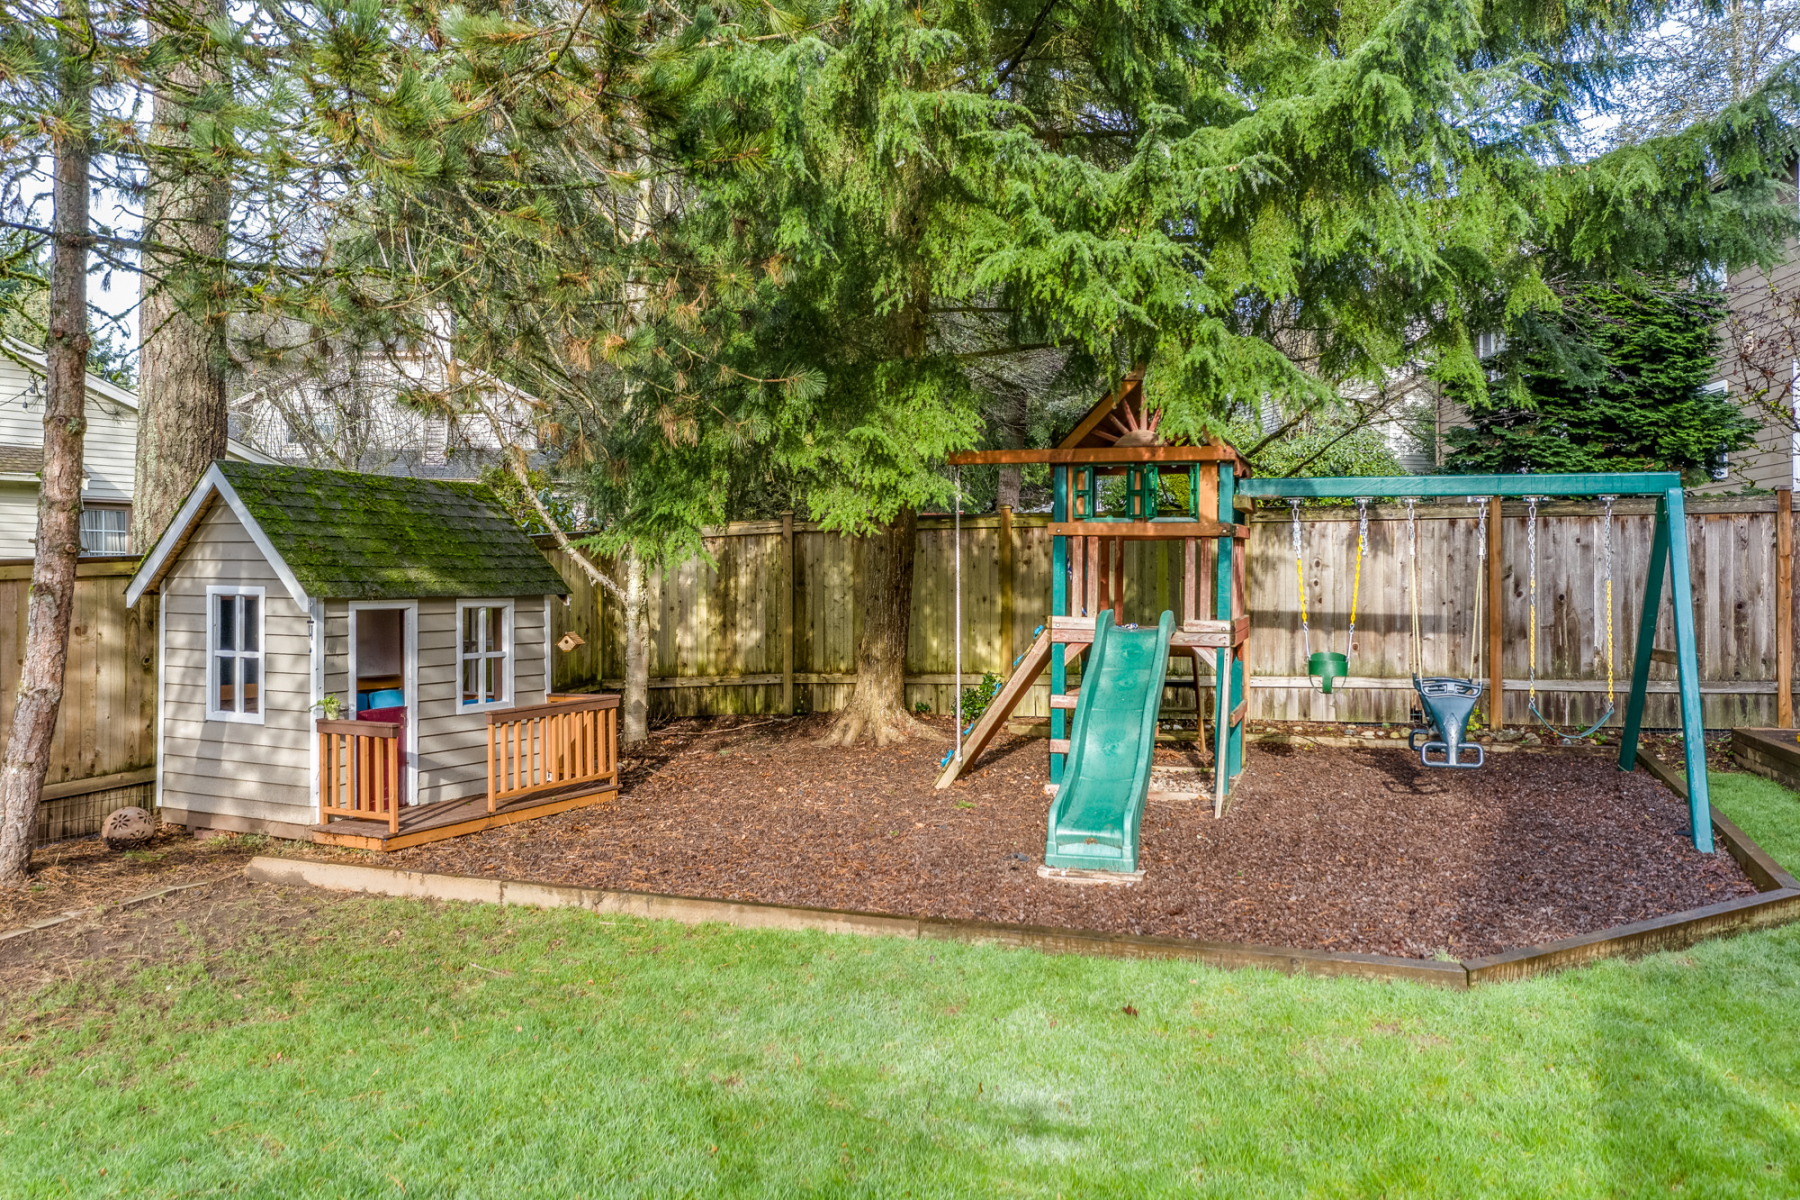 13817-178th-Ave-NE-Redmond-39